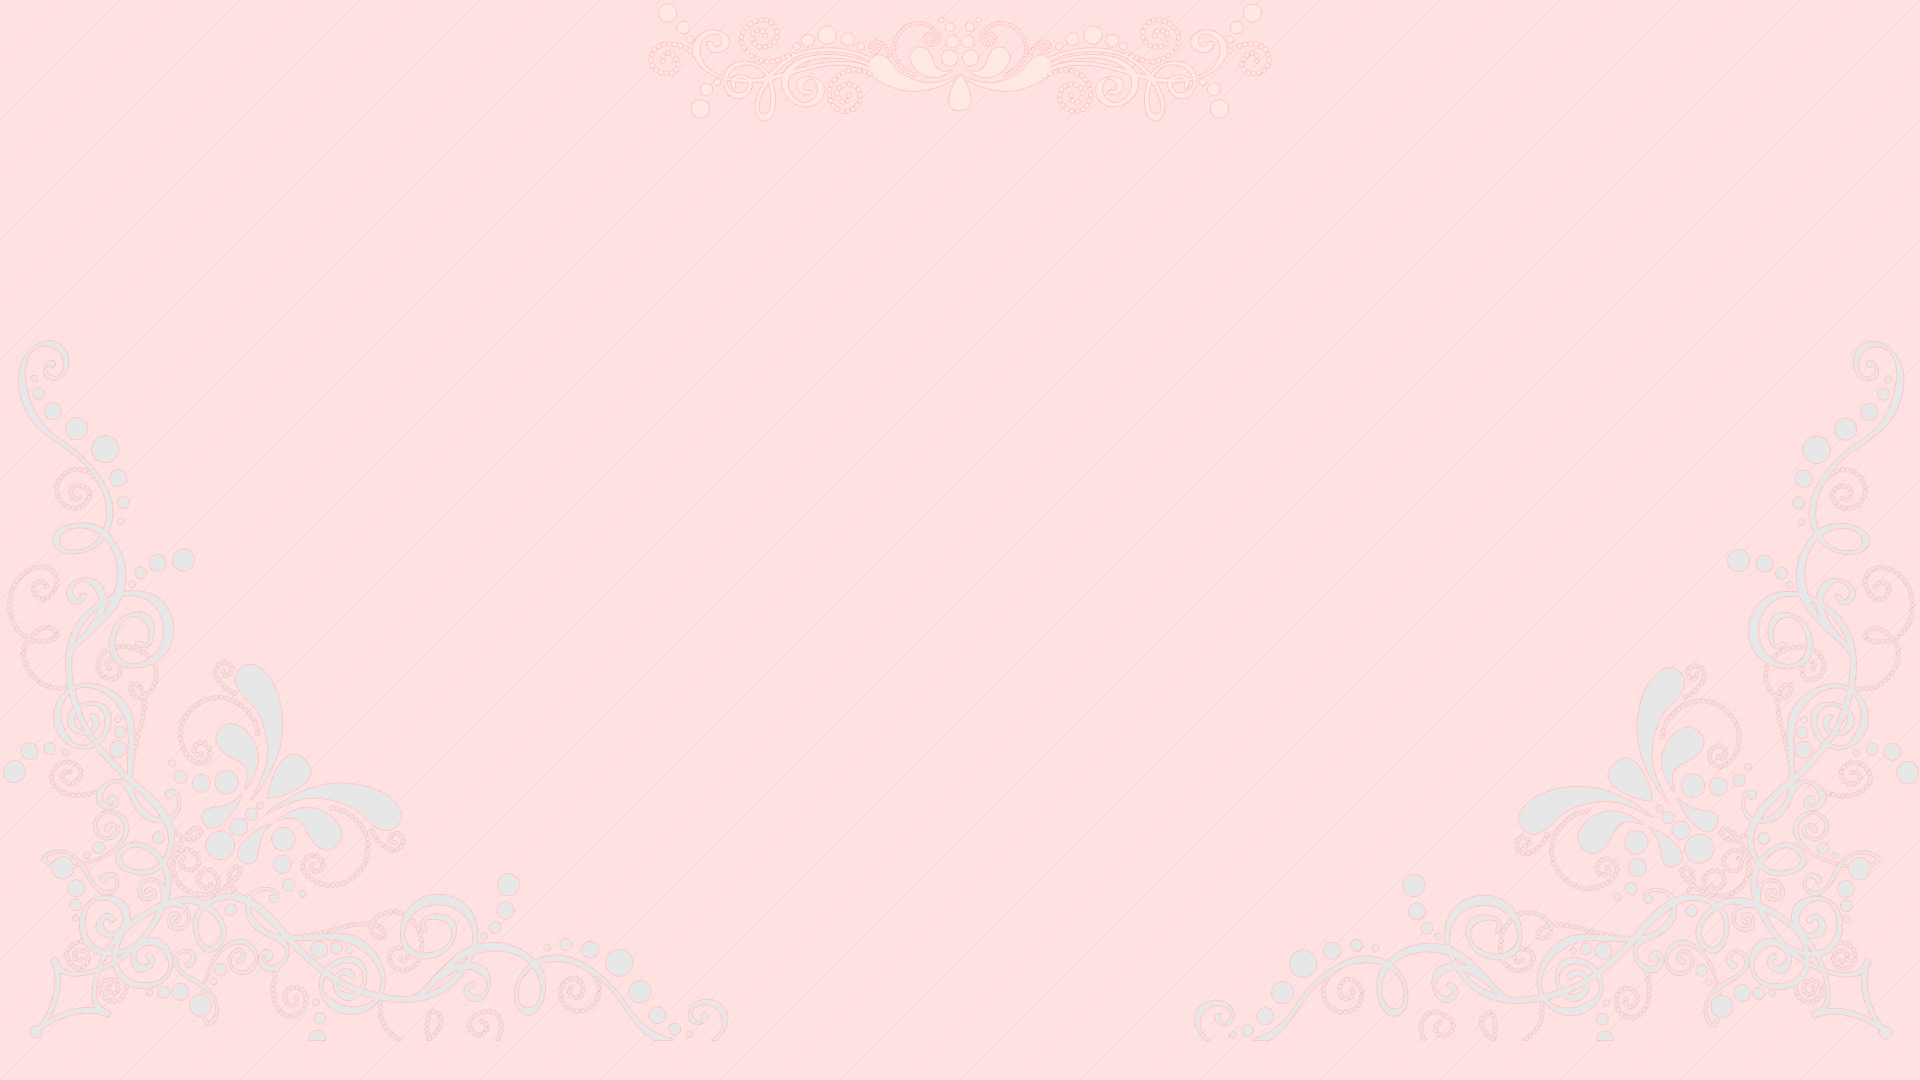 Pastel Pink Wallpaper High Definition High Quality Widescreen